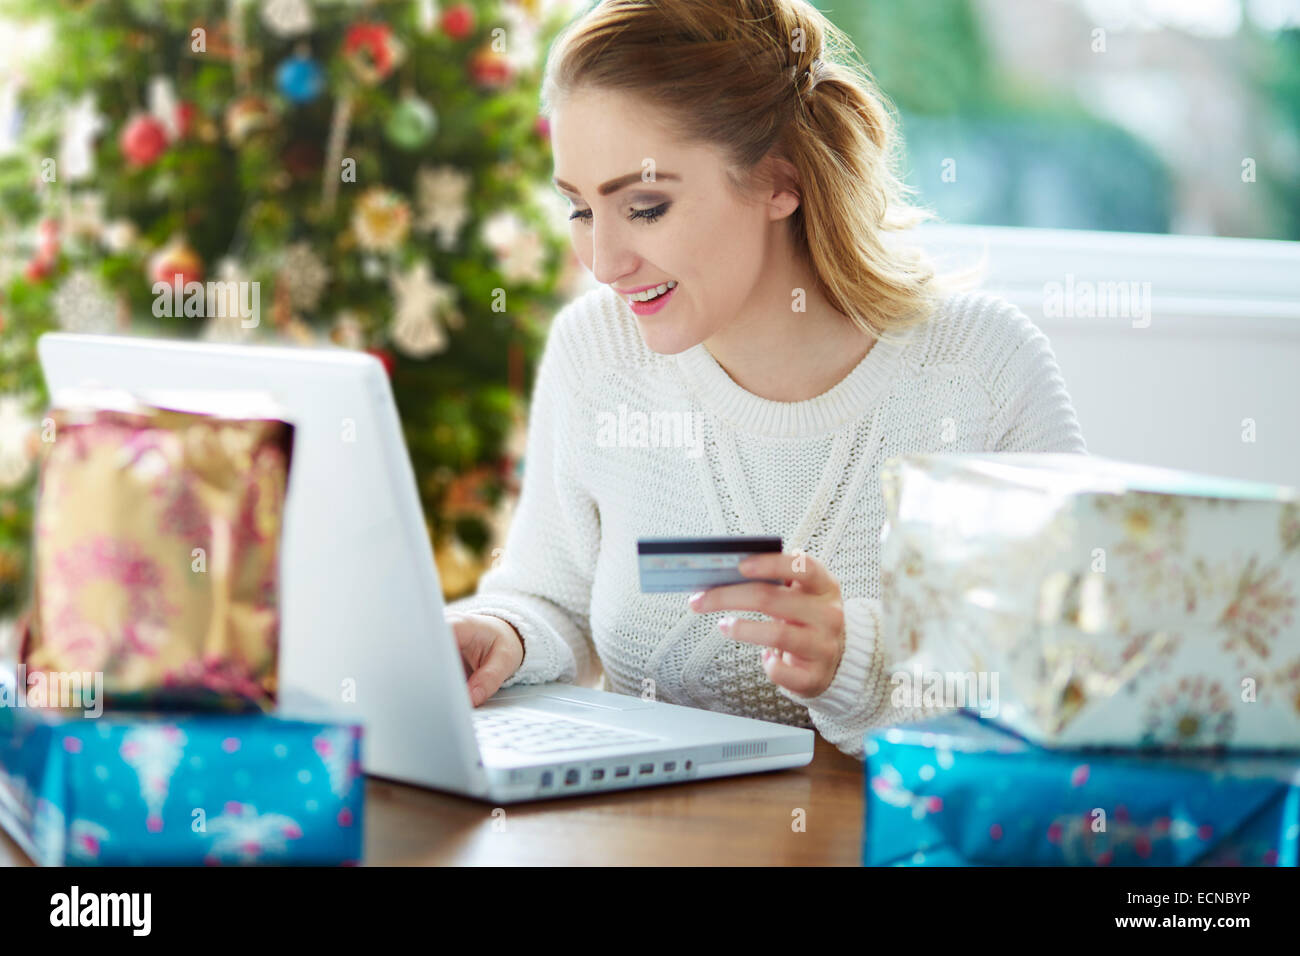 Woman shopping online at Christmas - Stock Image